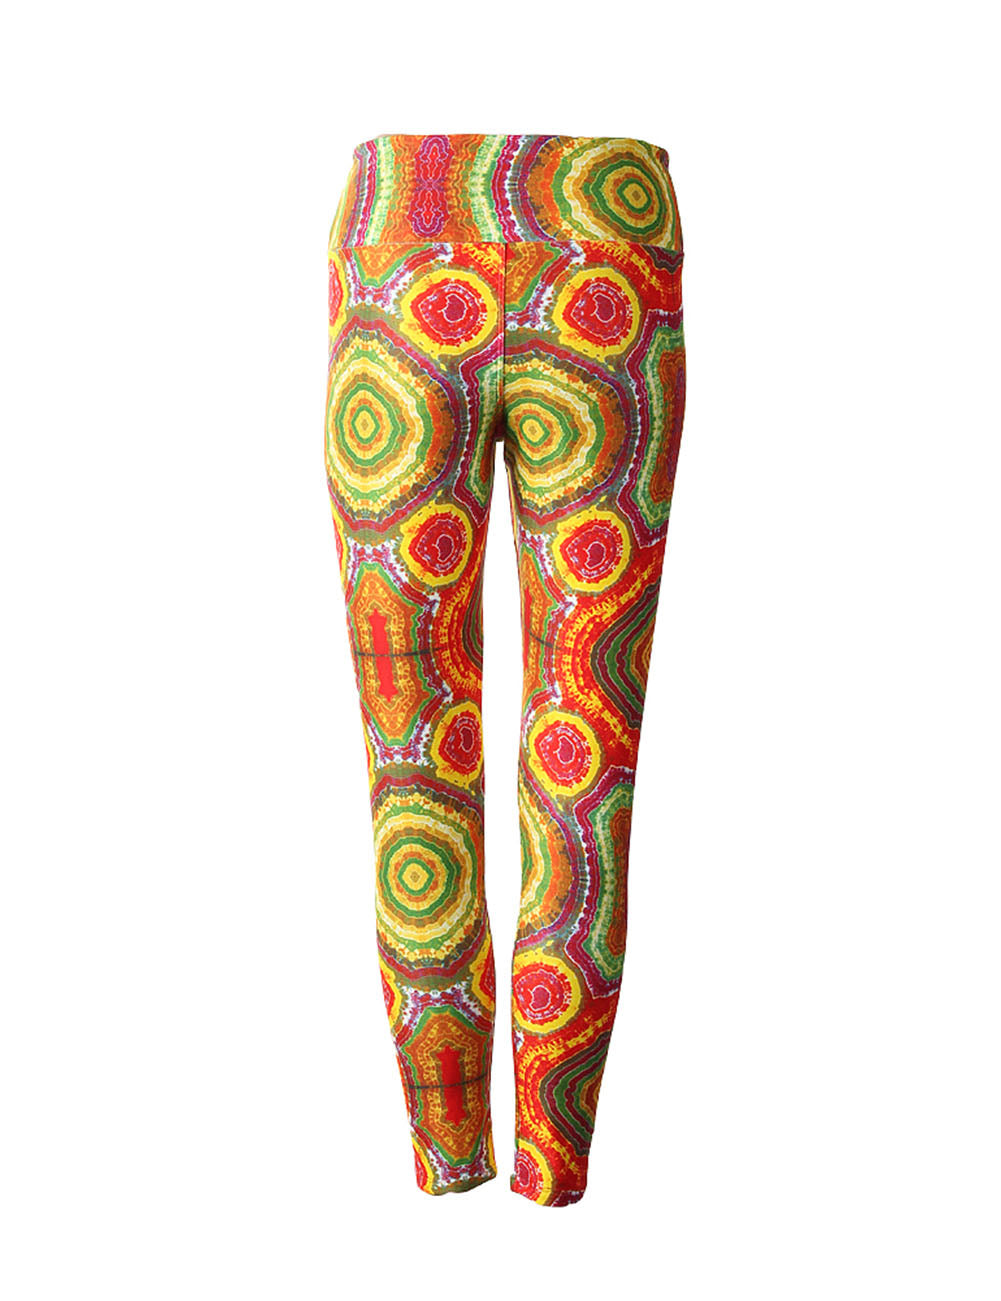 Captivating Flamboyant Kaleidoscopes Pattern Pants Outfit